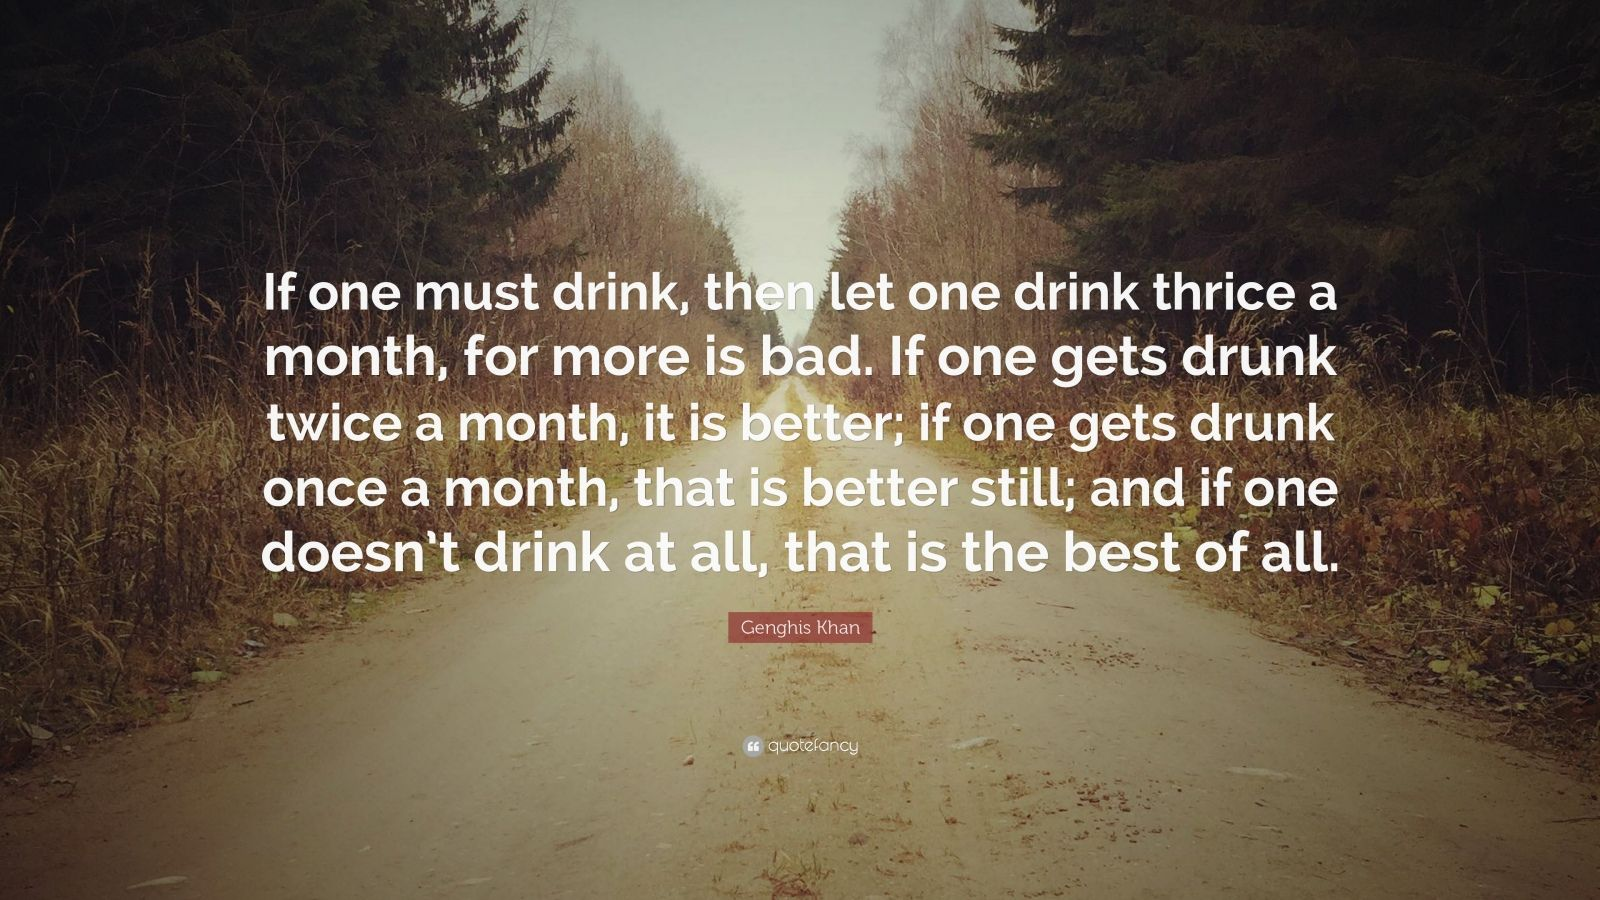 """Genghis Khan Quote: """"If one must drink, then let one drink thrice a month, for more is bad. If one gets drunk twice a month, it is better; if one gets drunk once a month, that is better still; and if one doesn't drink at all, that is the best of all."""""""